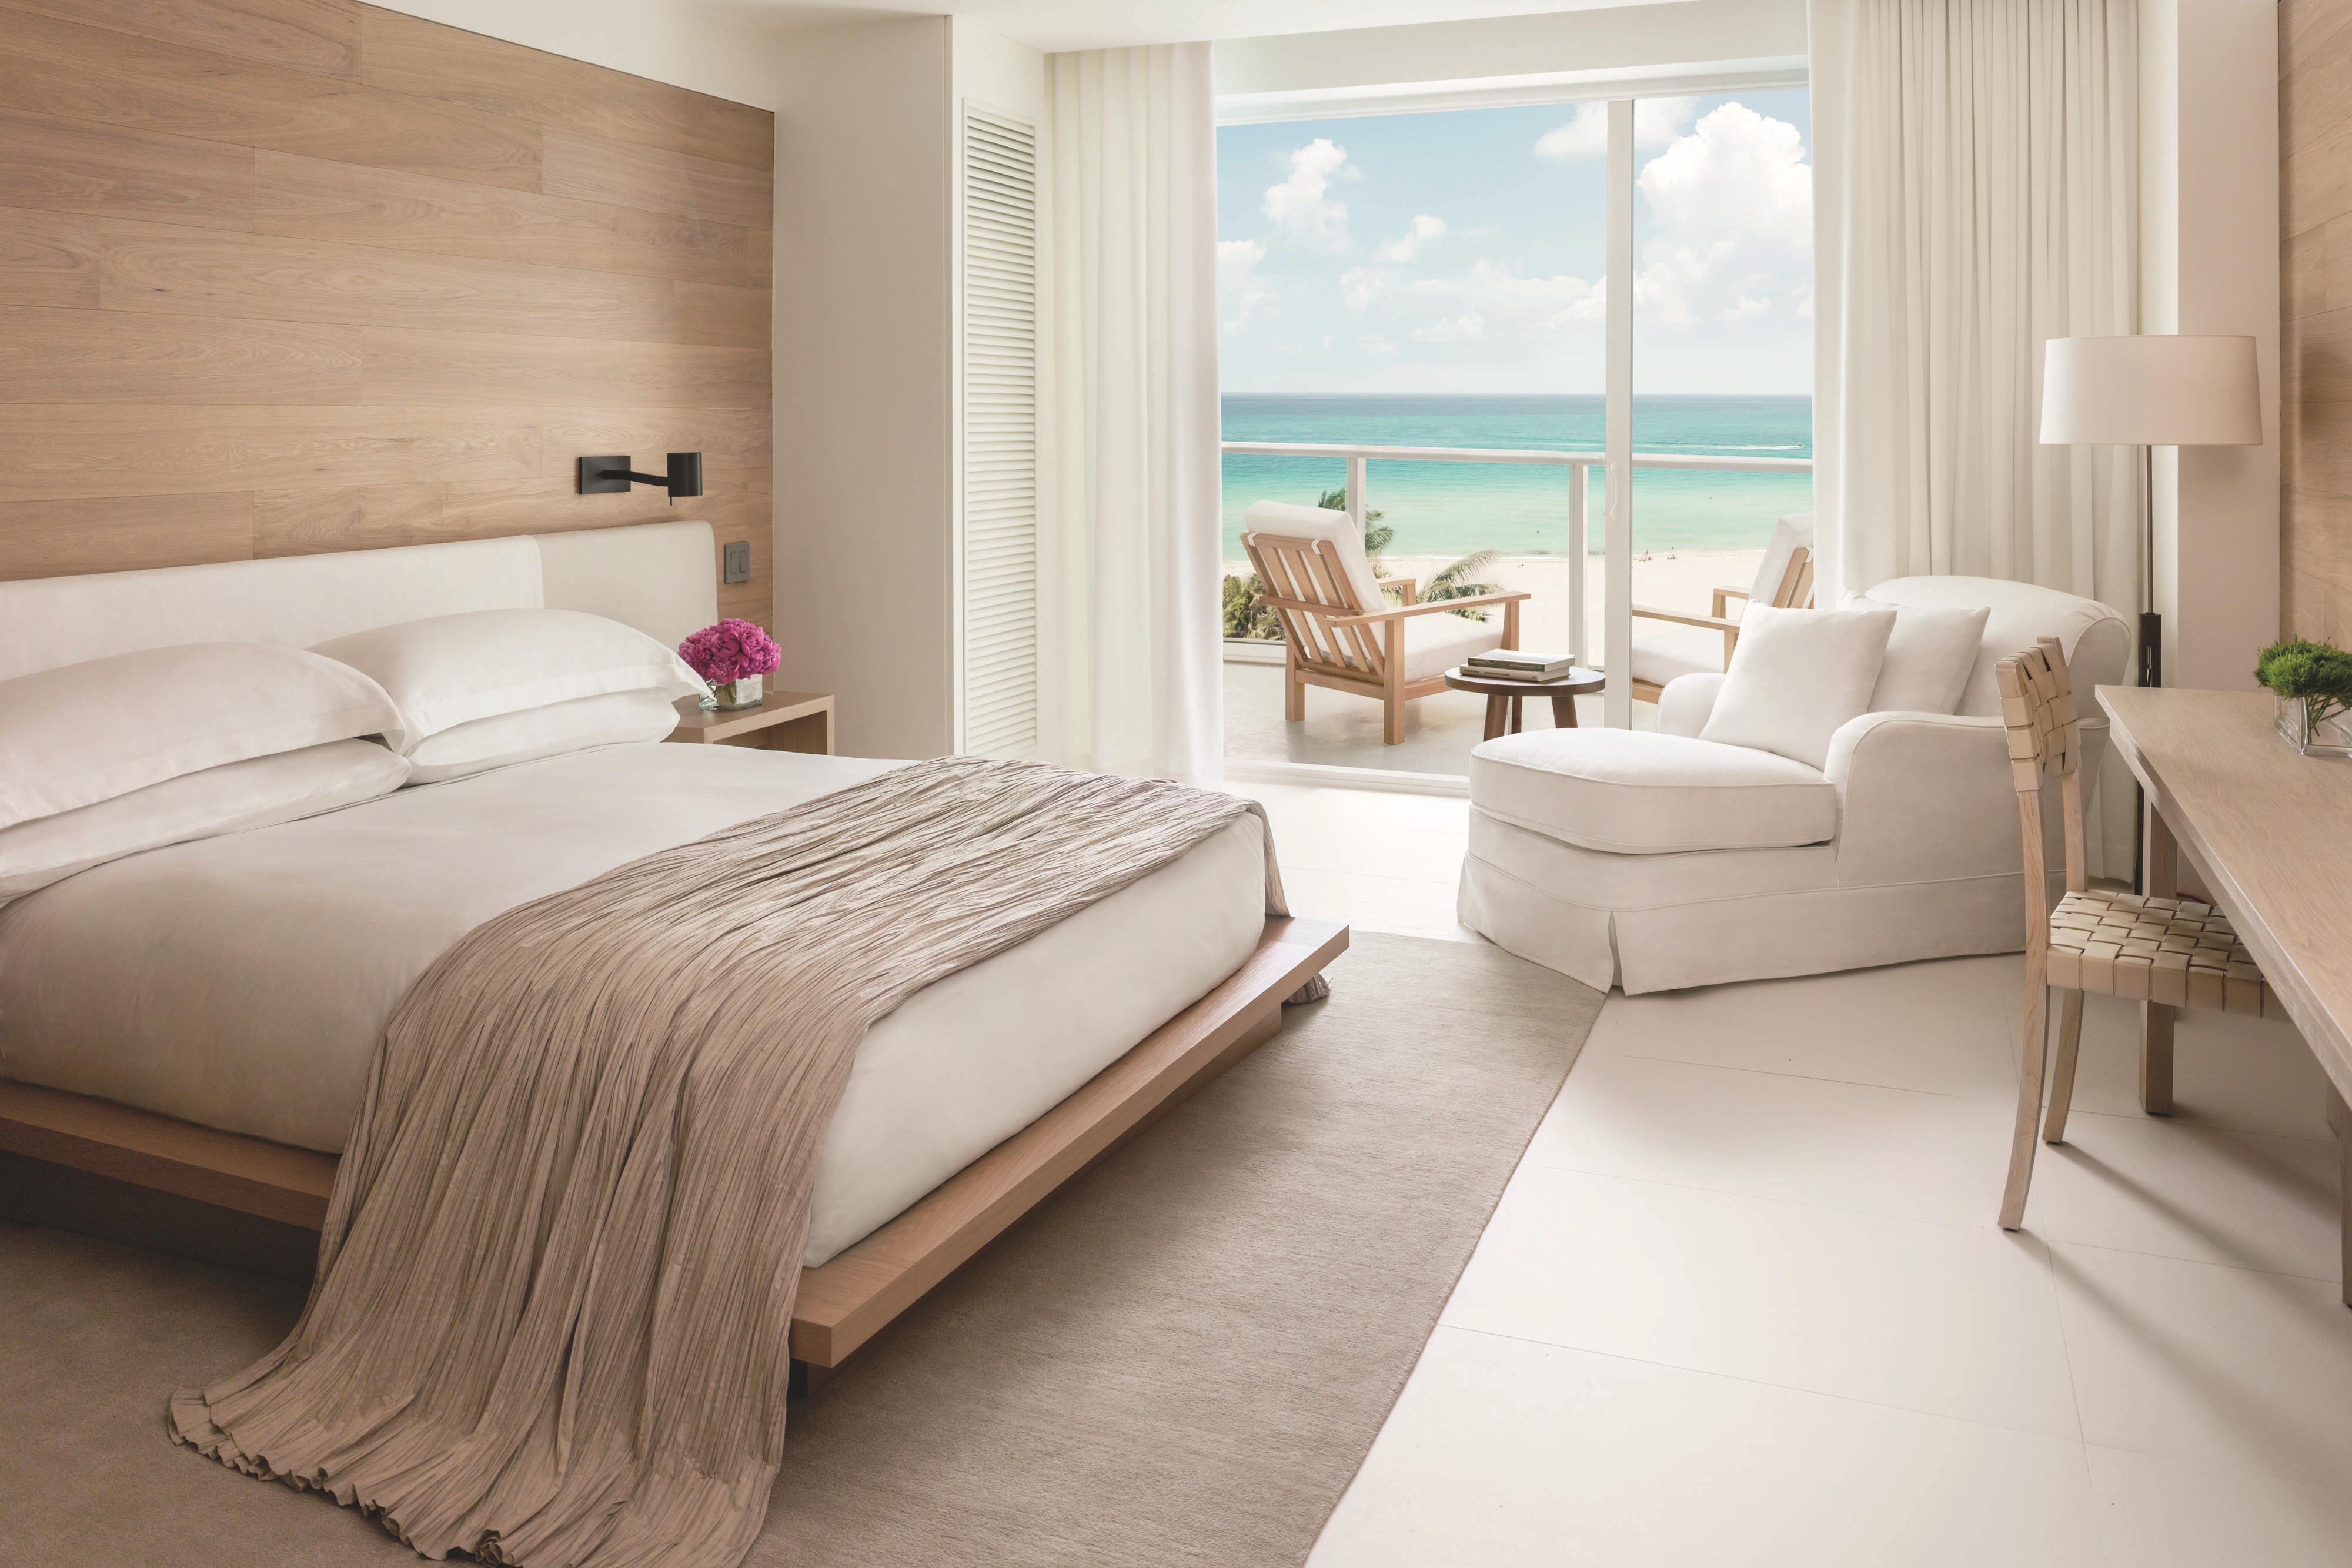 Hotelzimmer am Meer in Miami Beach